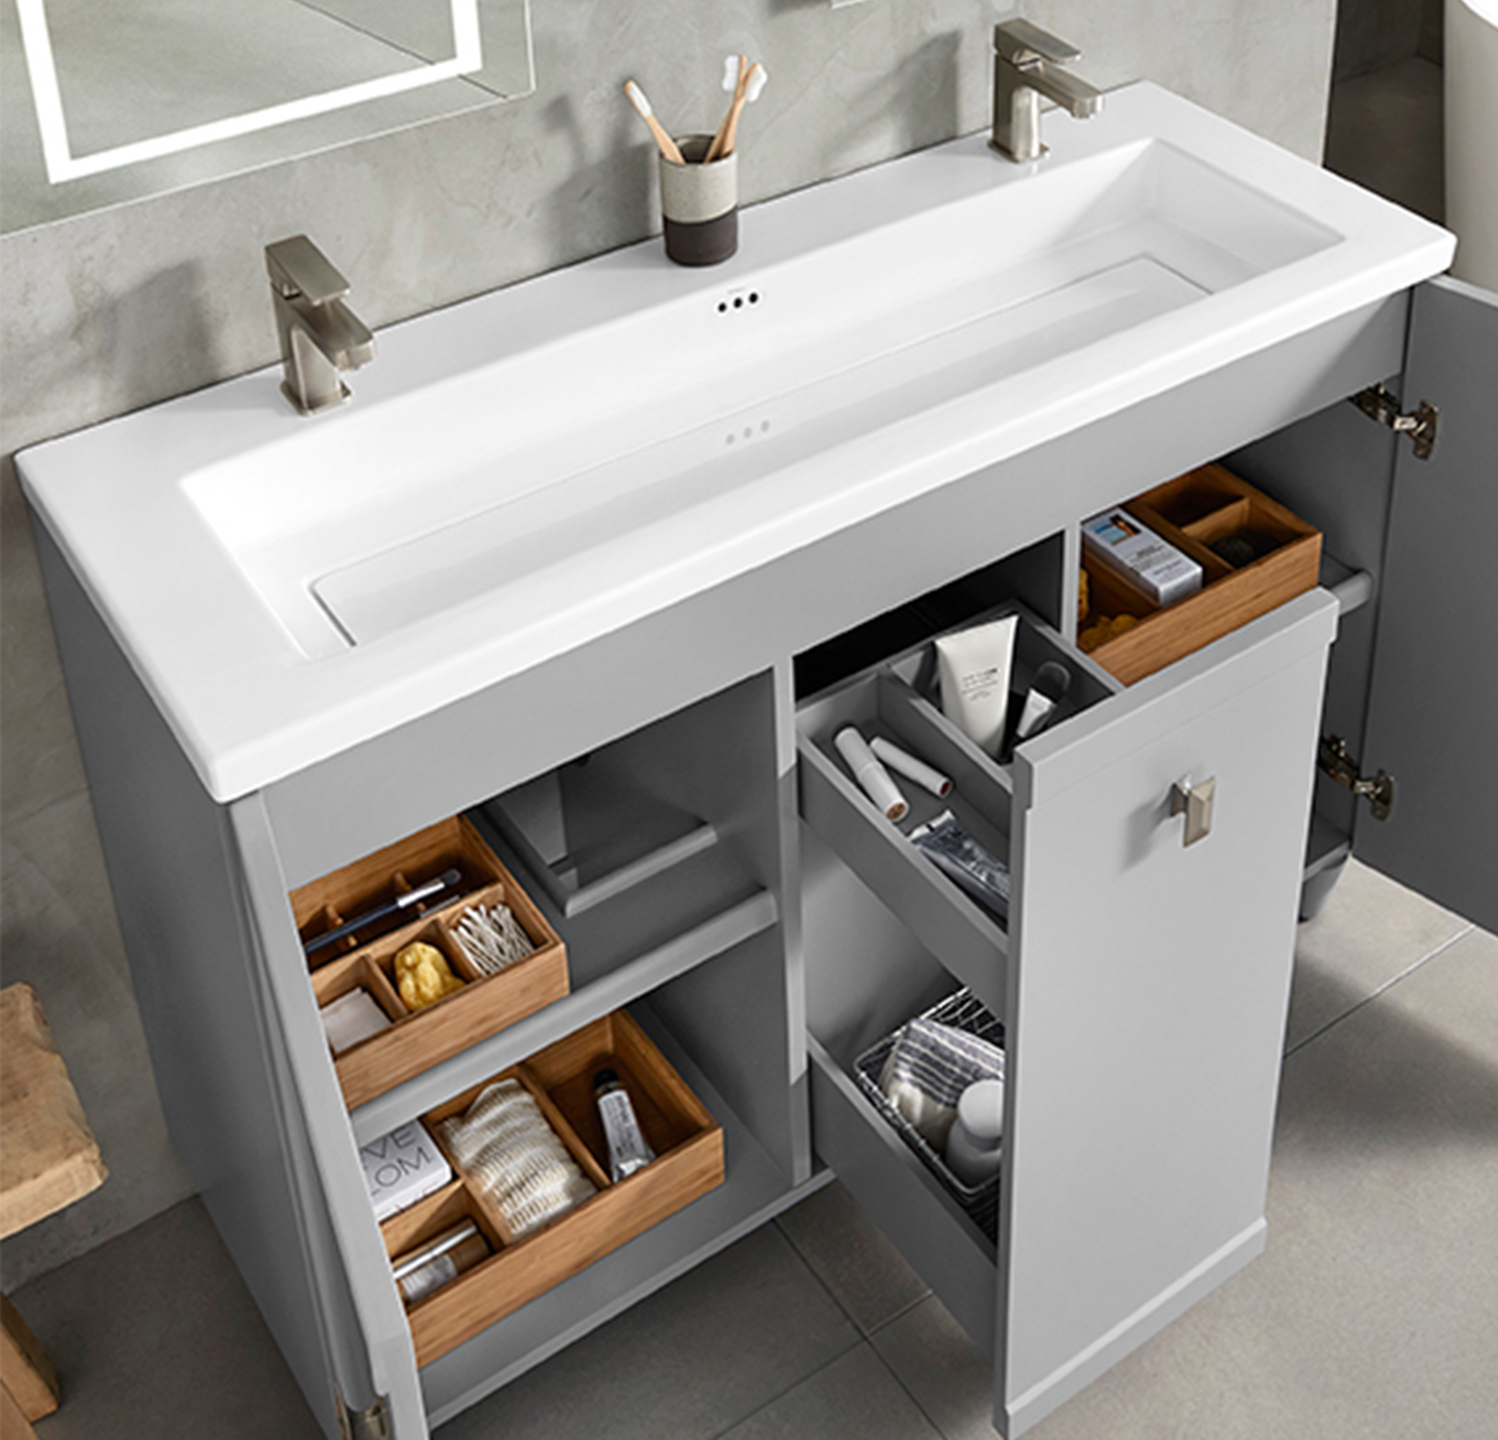 Ronbow launched Aravo Solutions, a customizable vanity.